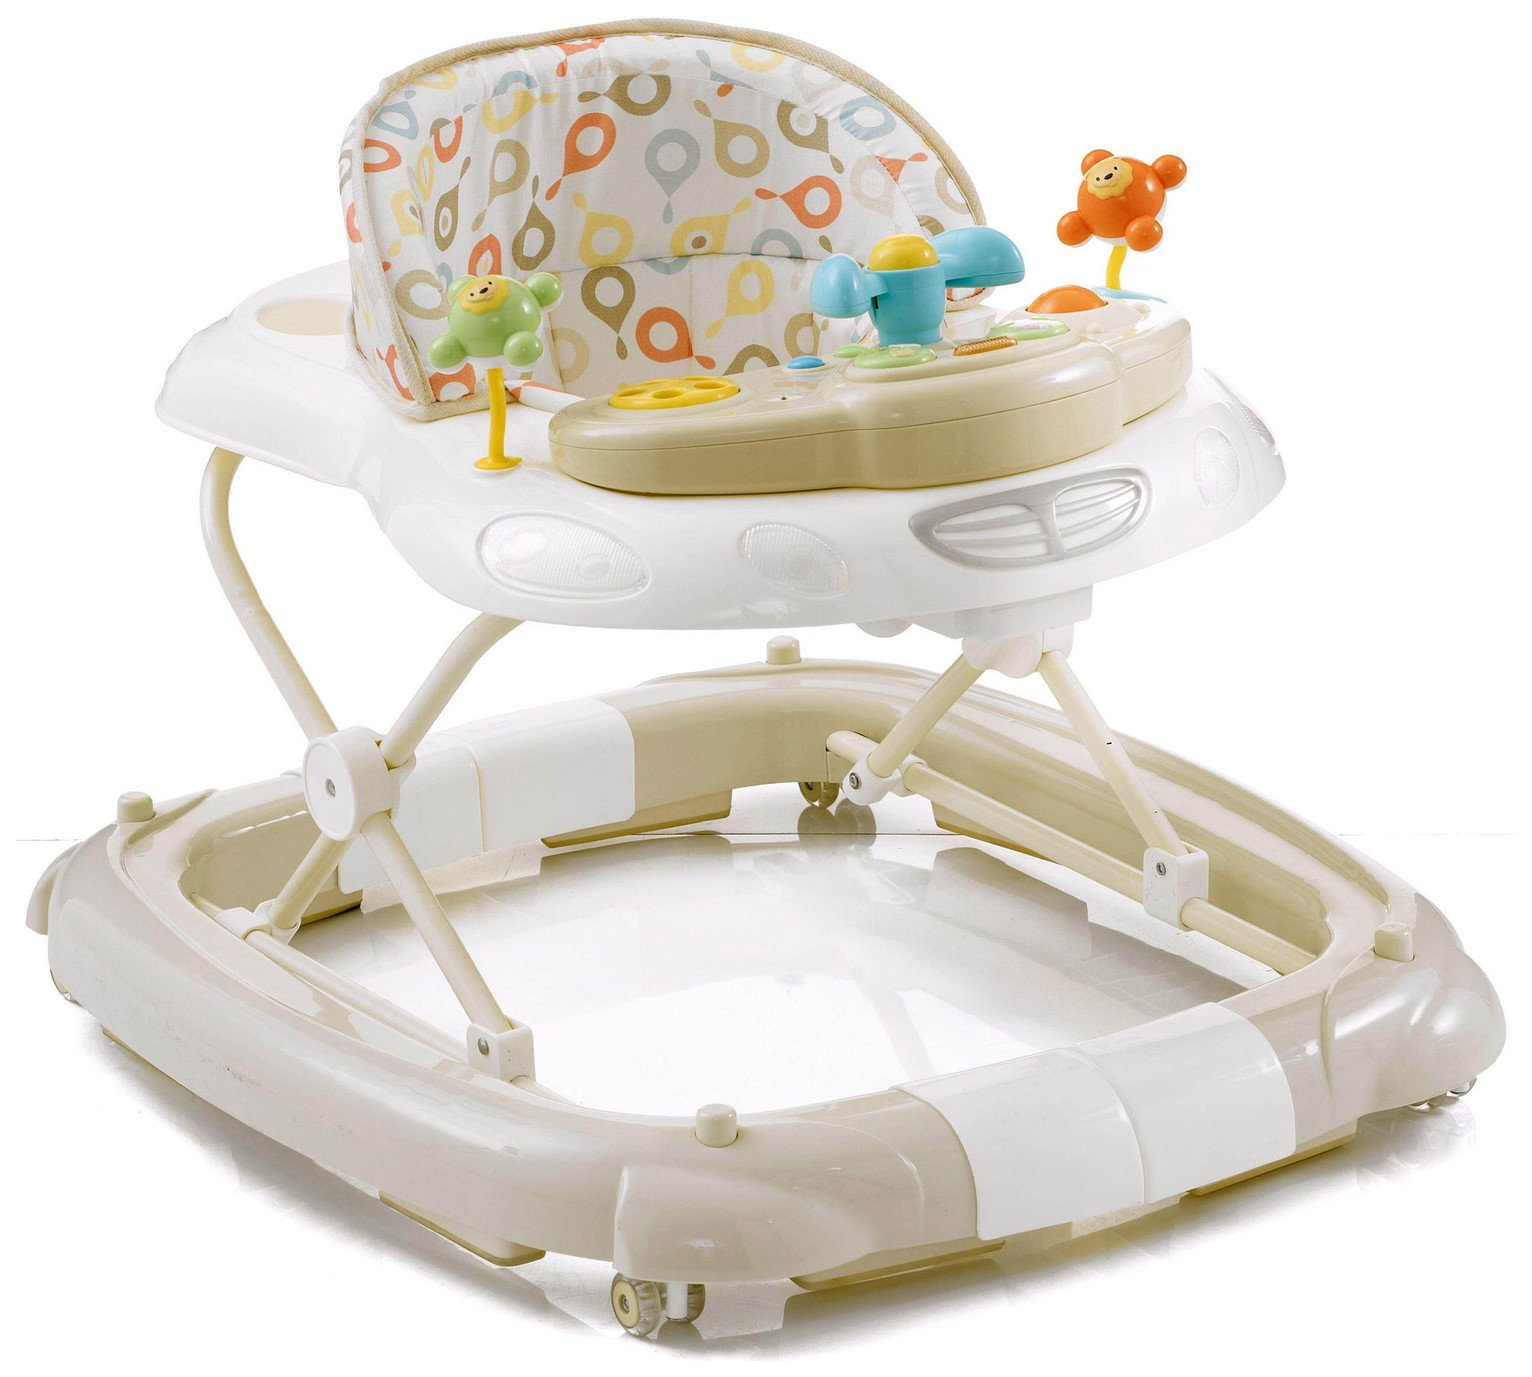 MyChild - Walk N Rock 2 In 1 - Baby Walker - Neutral from Mychild